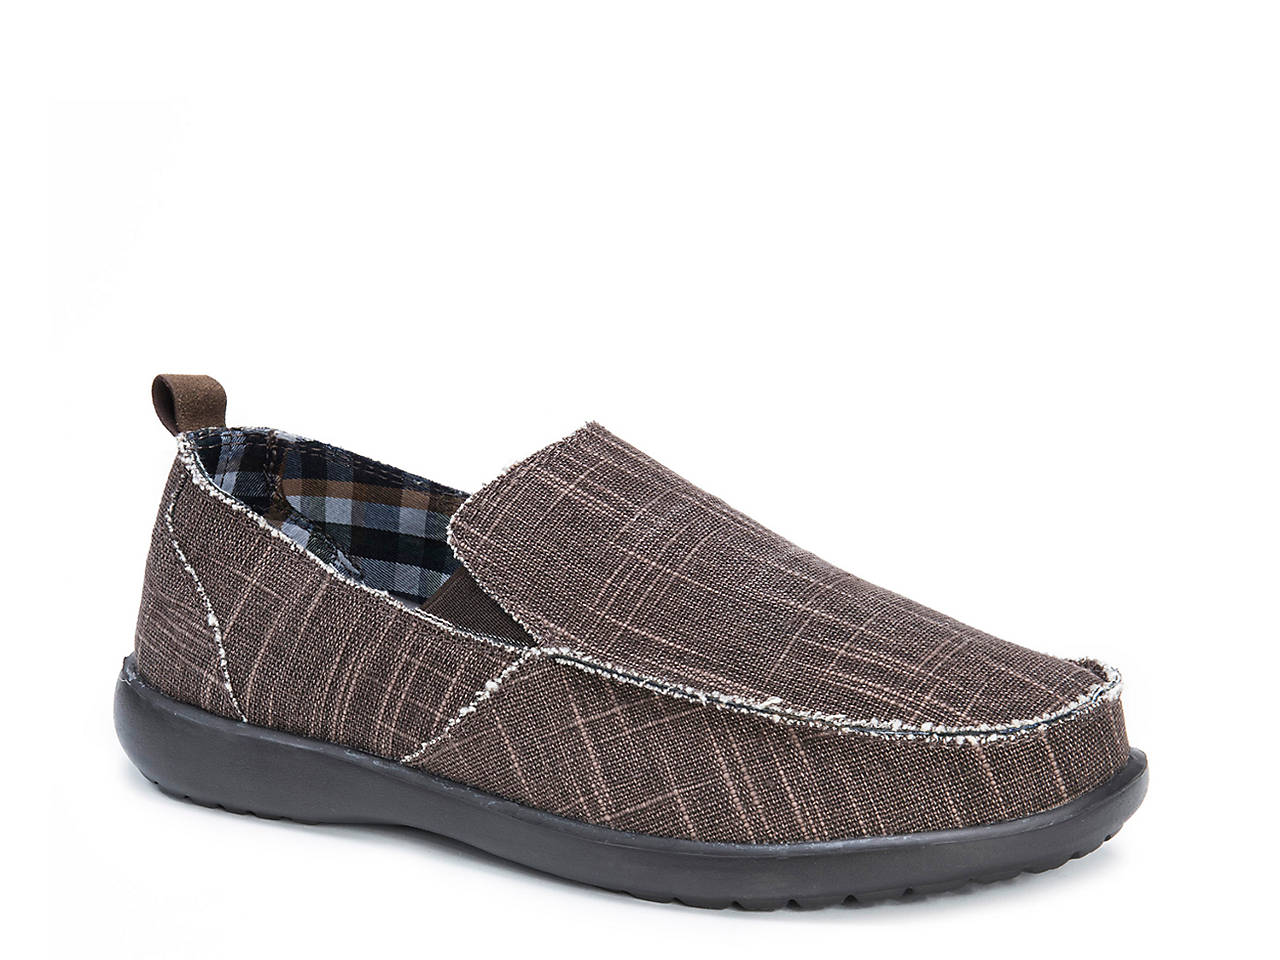 MUK LUKS Andy Men's Slip-On ... Shoes free shipping factory outlet cheap 2014 new cheap sale with mastercard vuLyZ